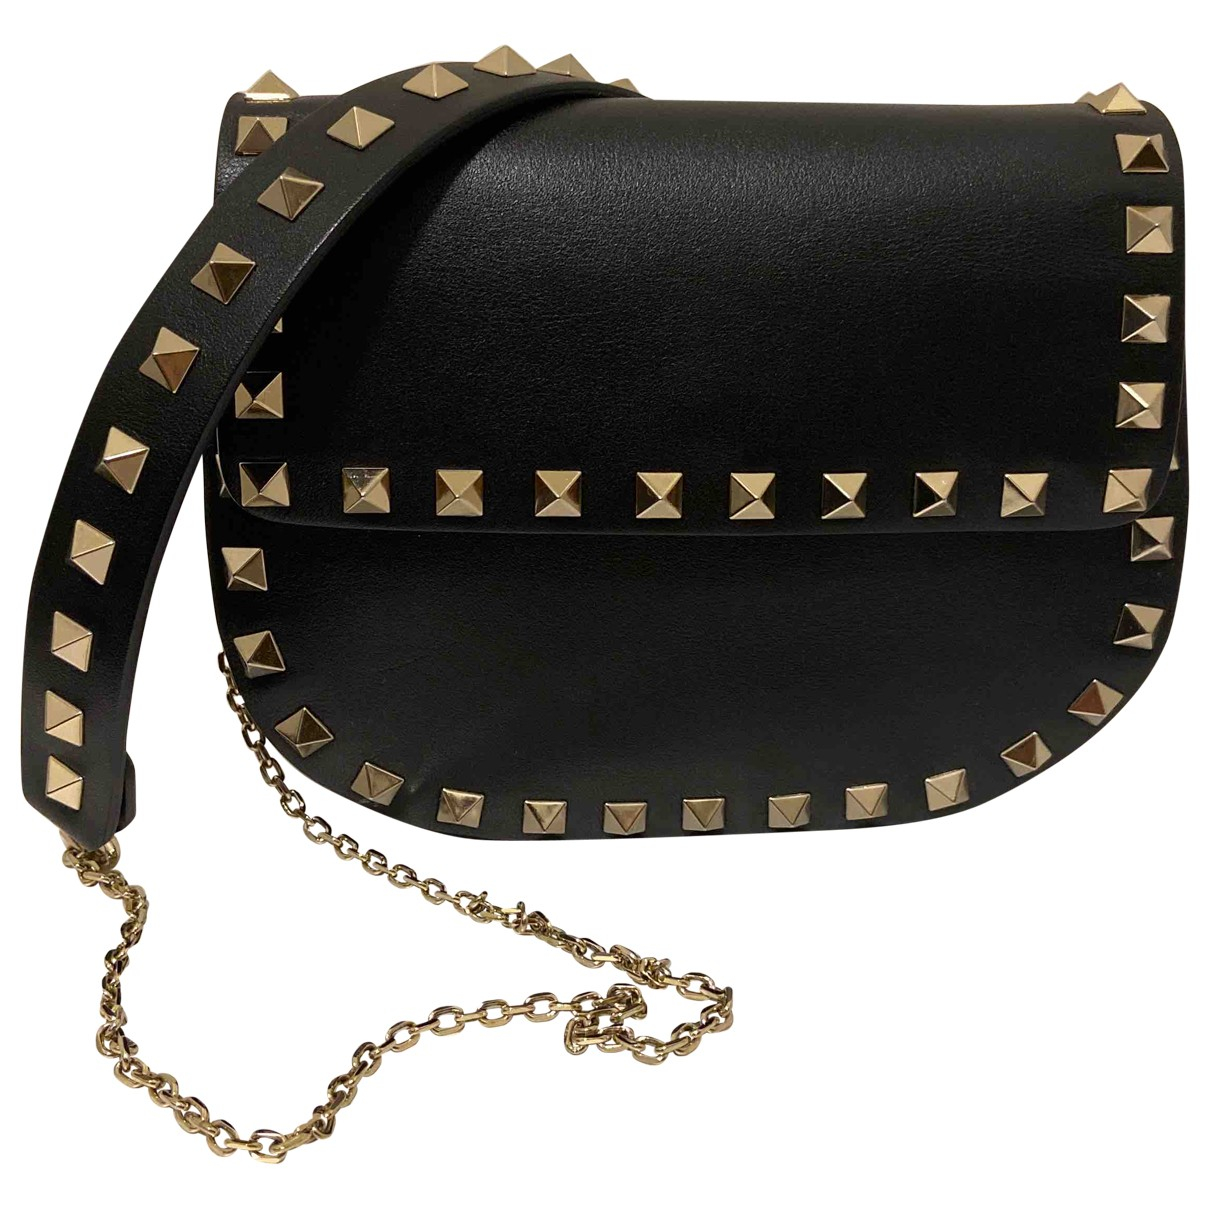 Valentino Garavani Rockstud Black Leather handbag for Women \N